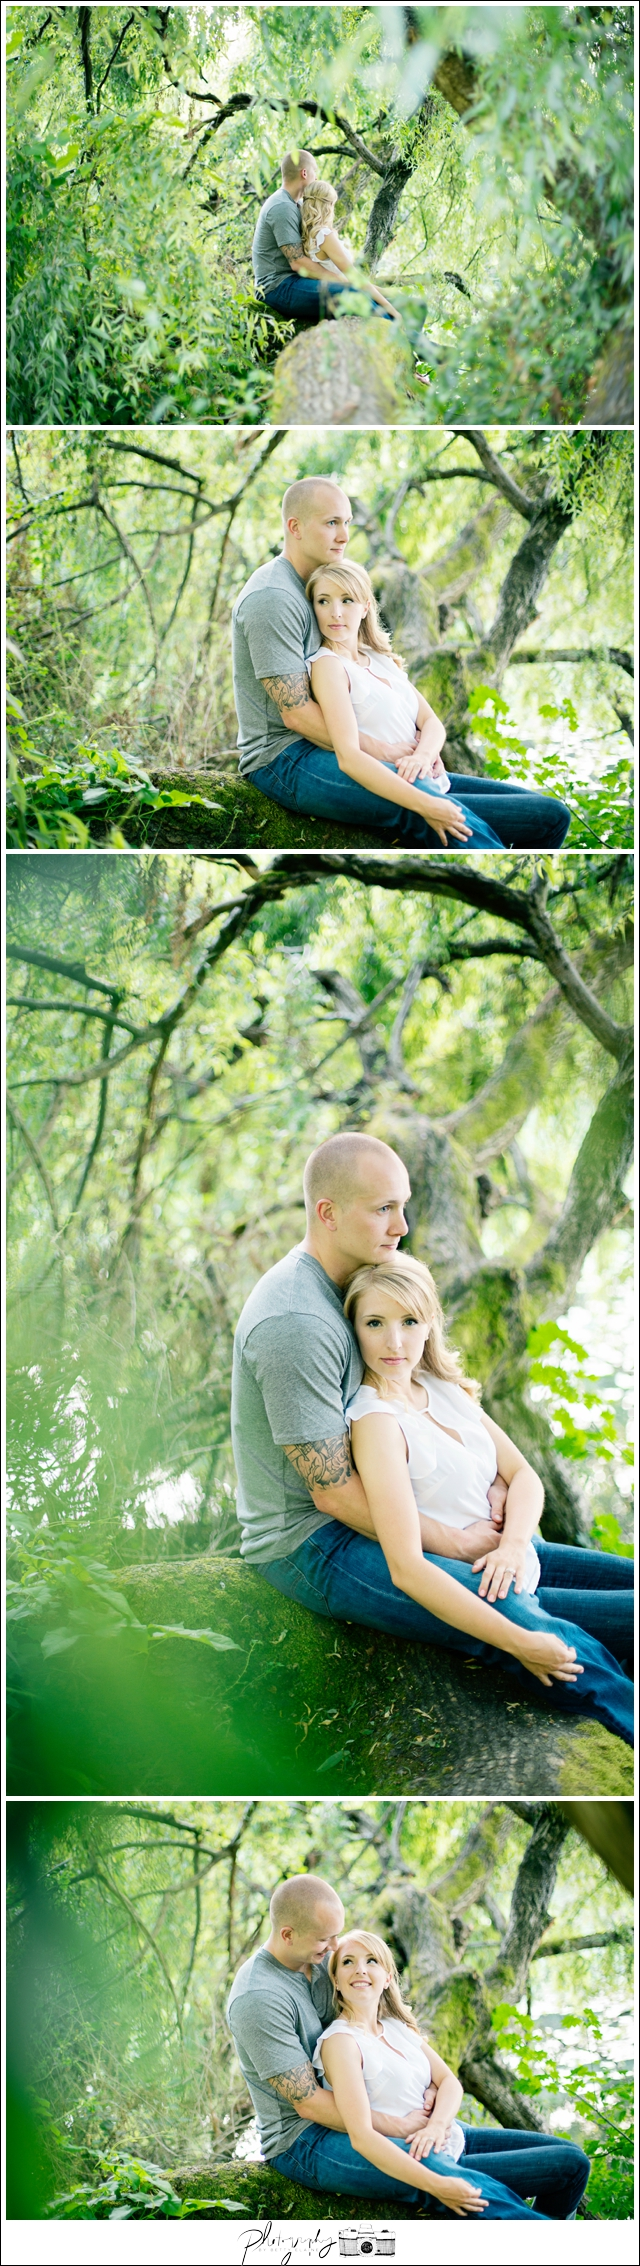 3-Washington-Park-Arboretum-willow-tree-climbing-tree-engagement-portraits-Seattle-wedding-photographer